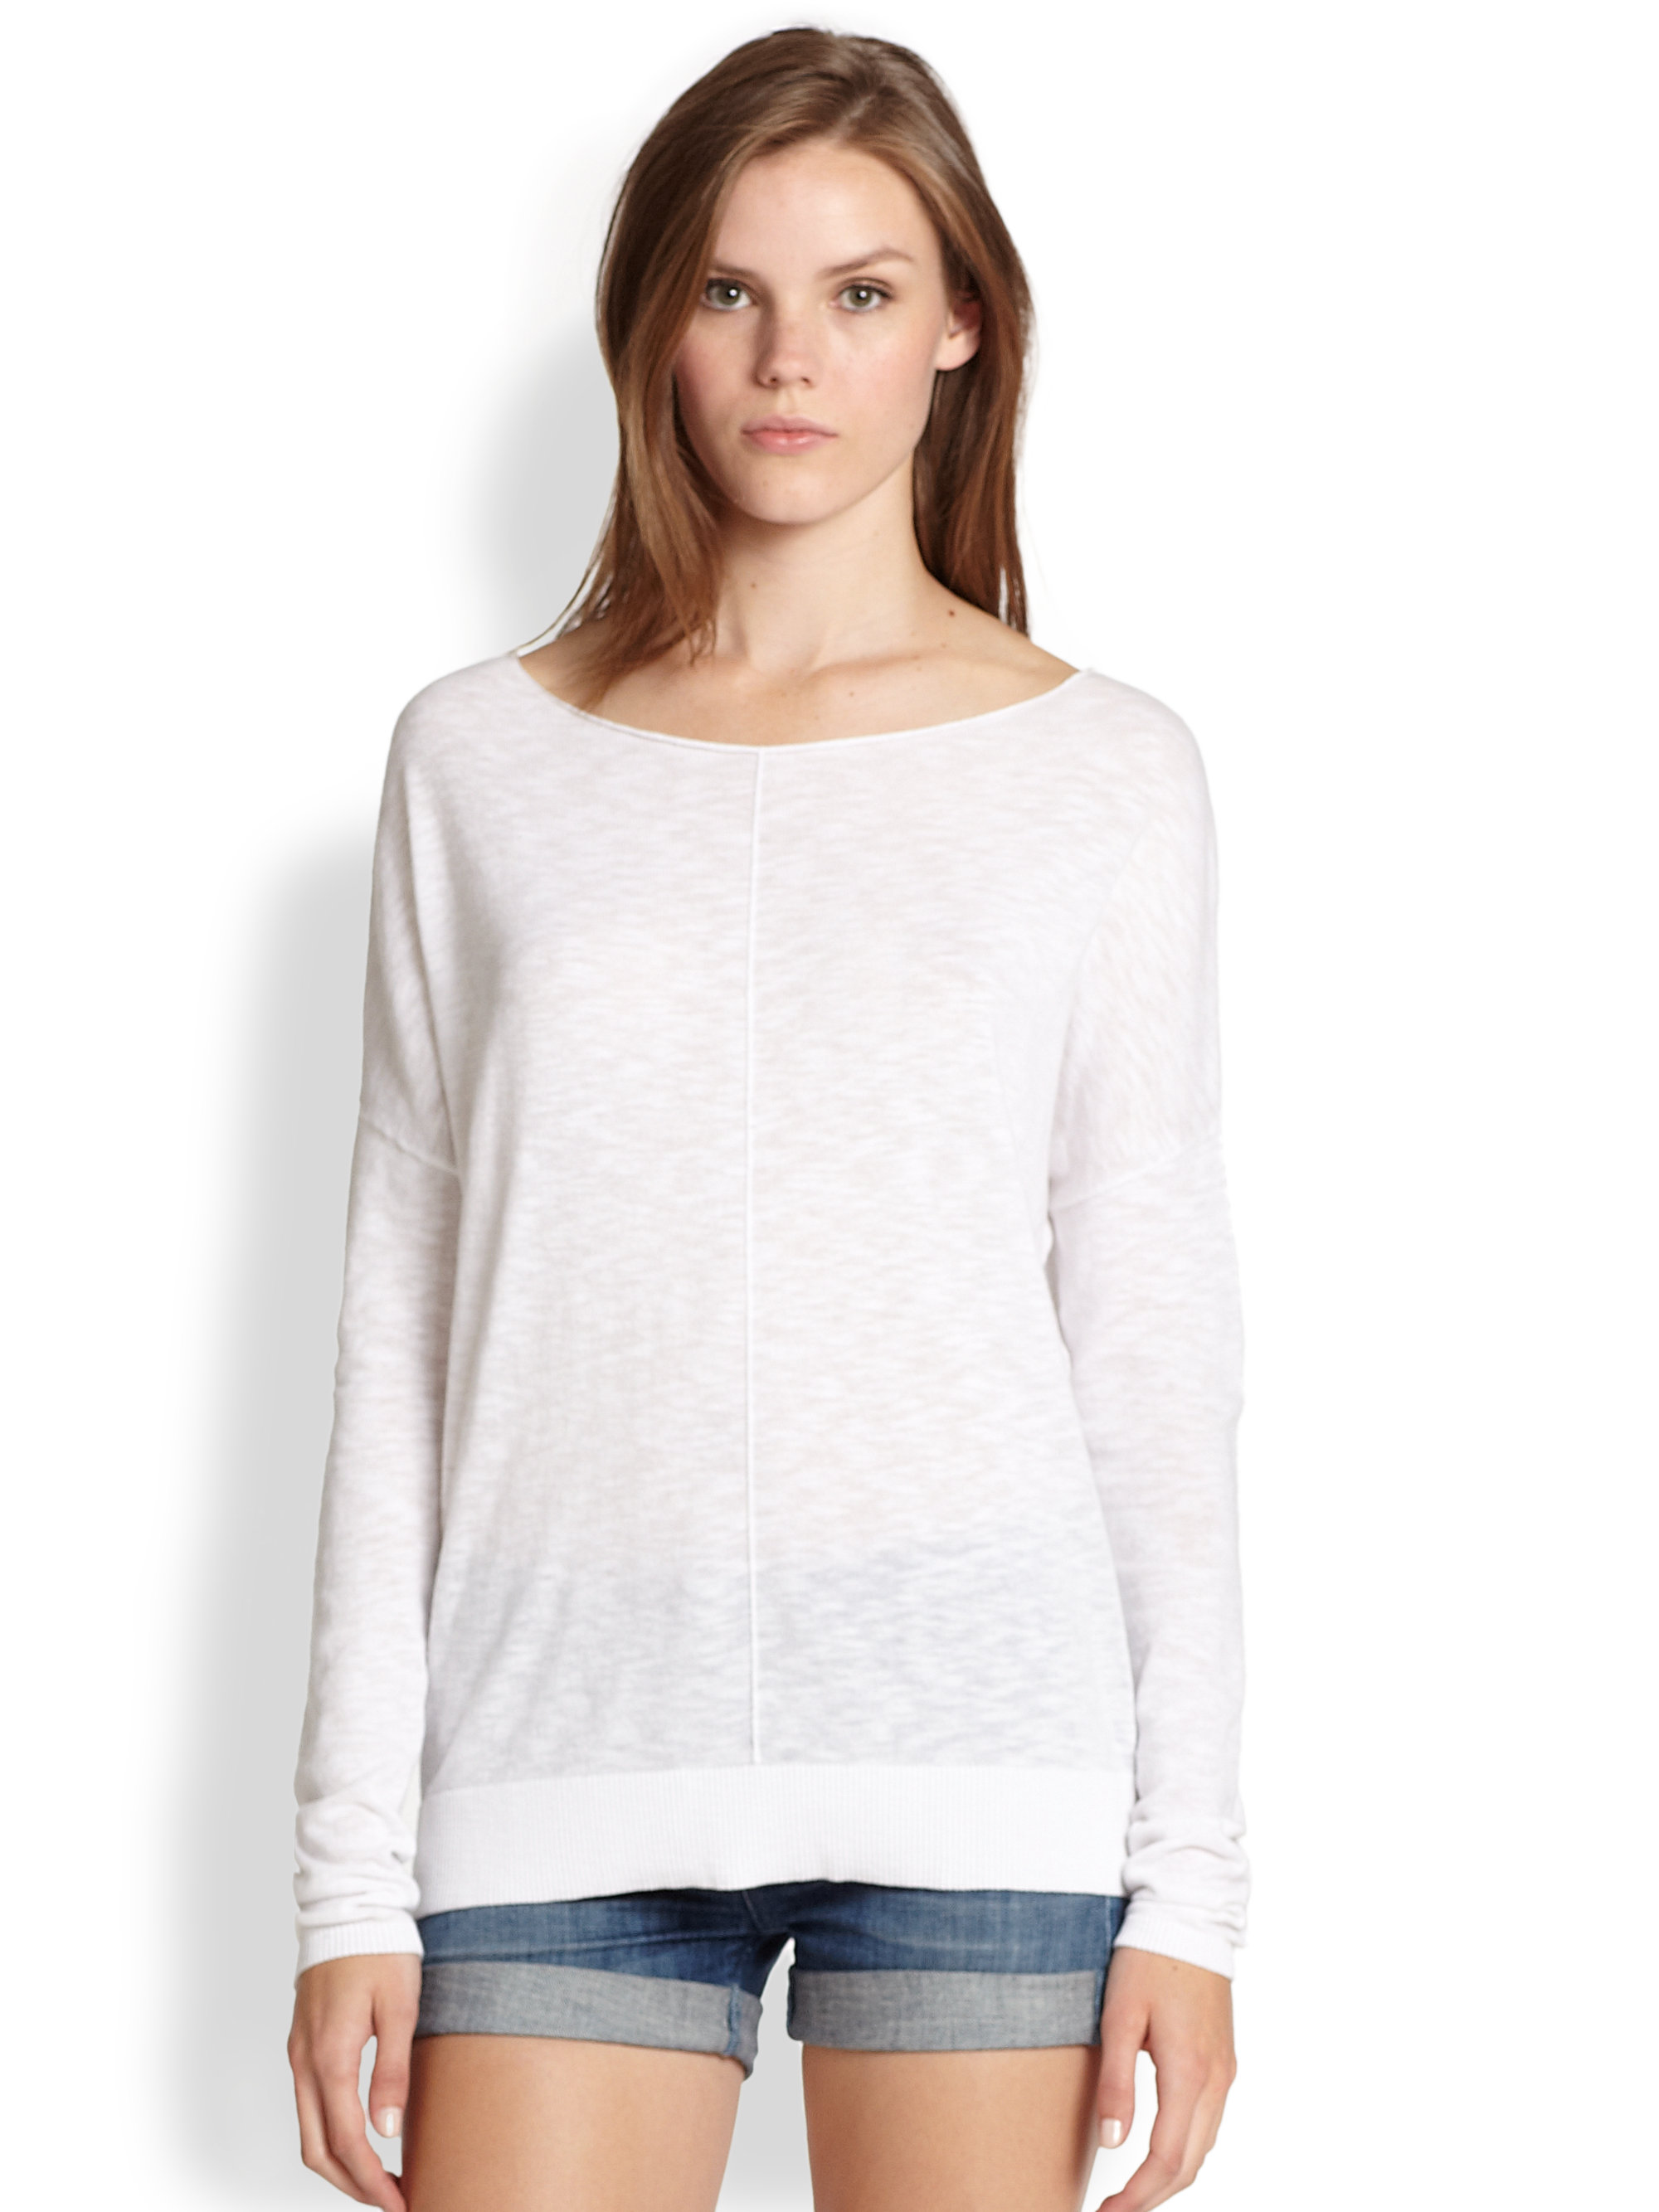 Vince Rolled Cotton Slub Sweater in White   Lyst